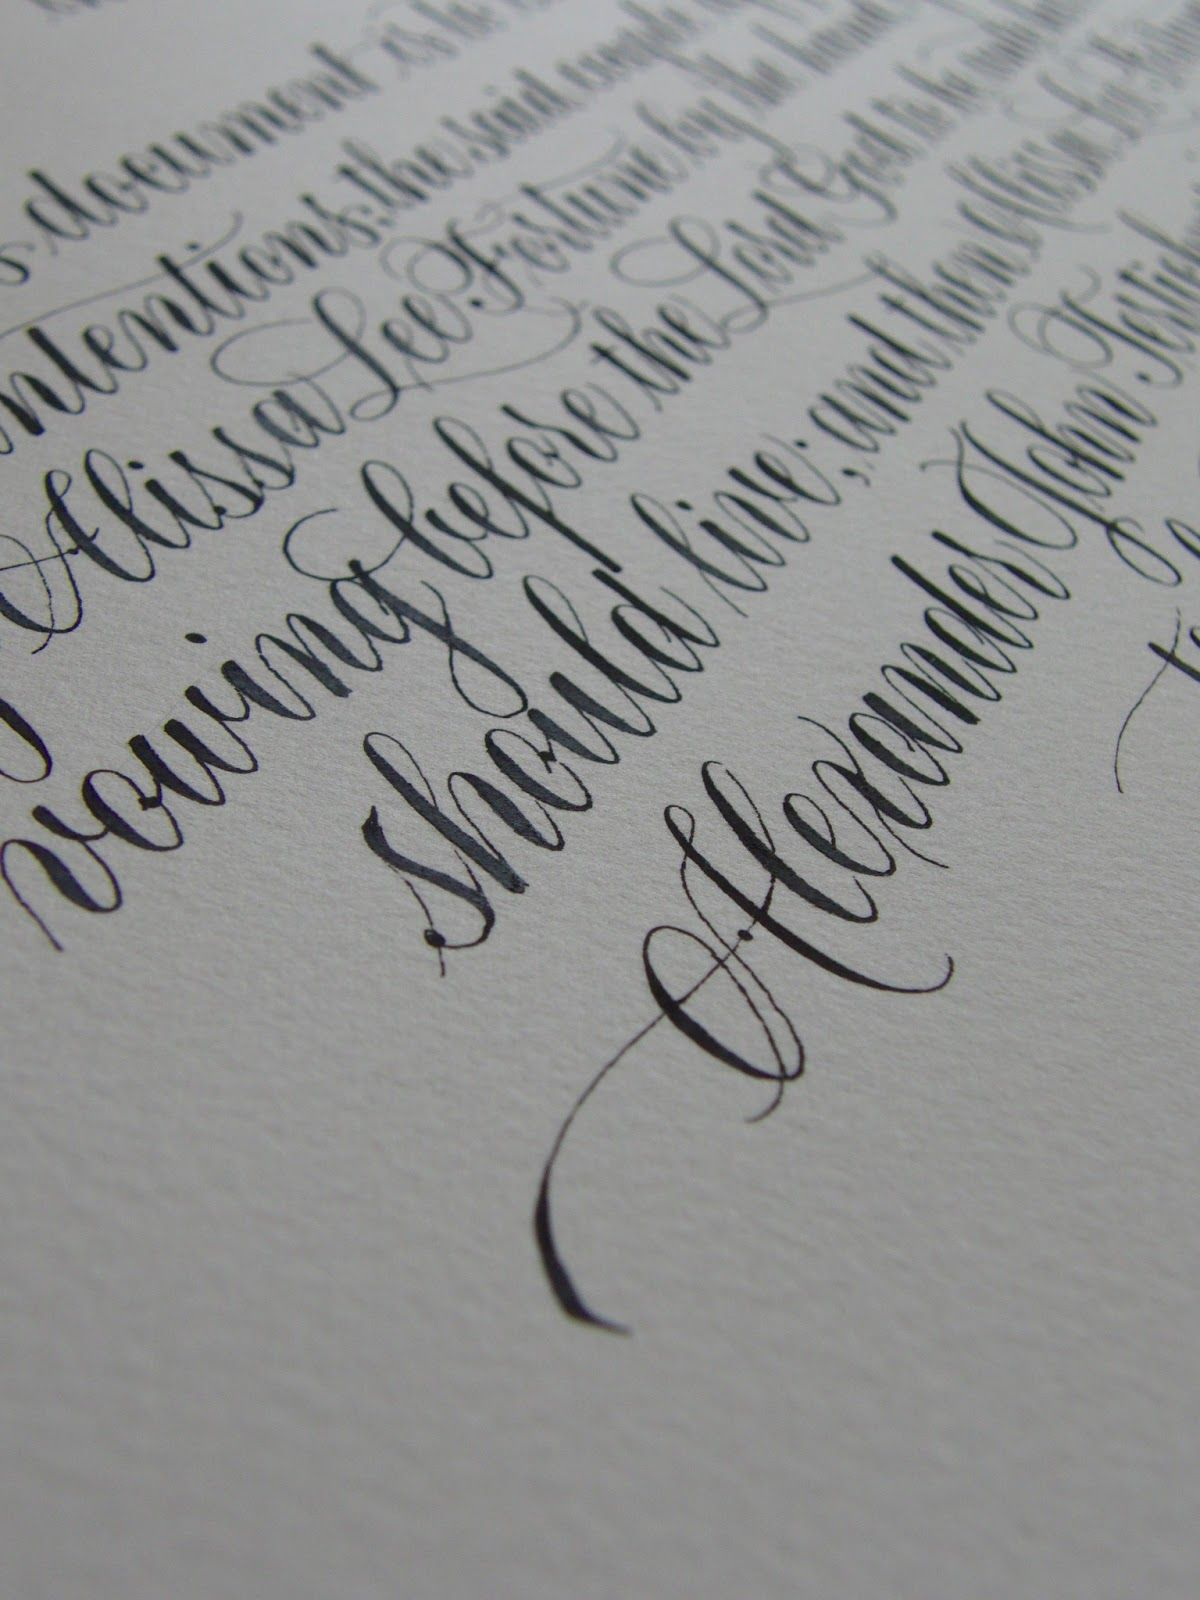 Beautiful calligraphy the beauty of penmanship once